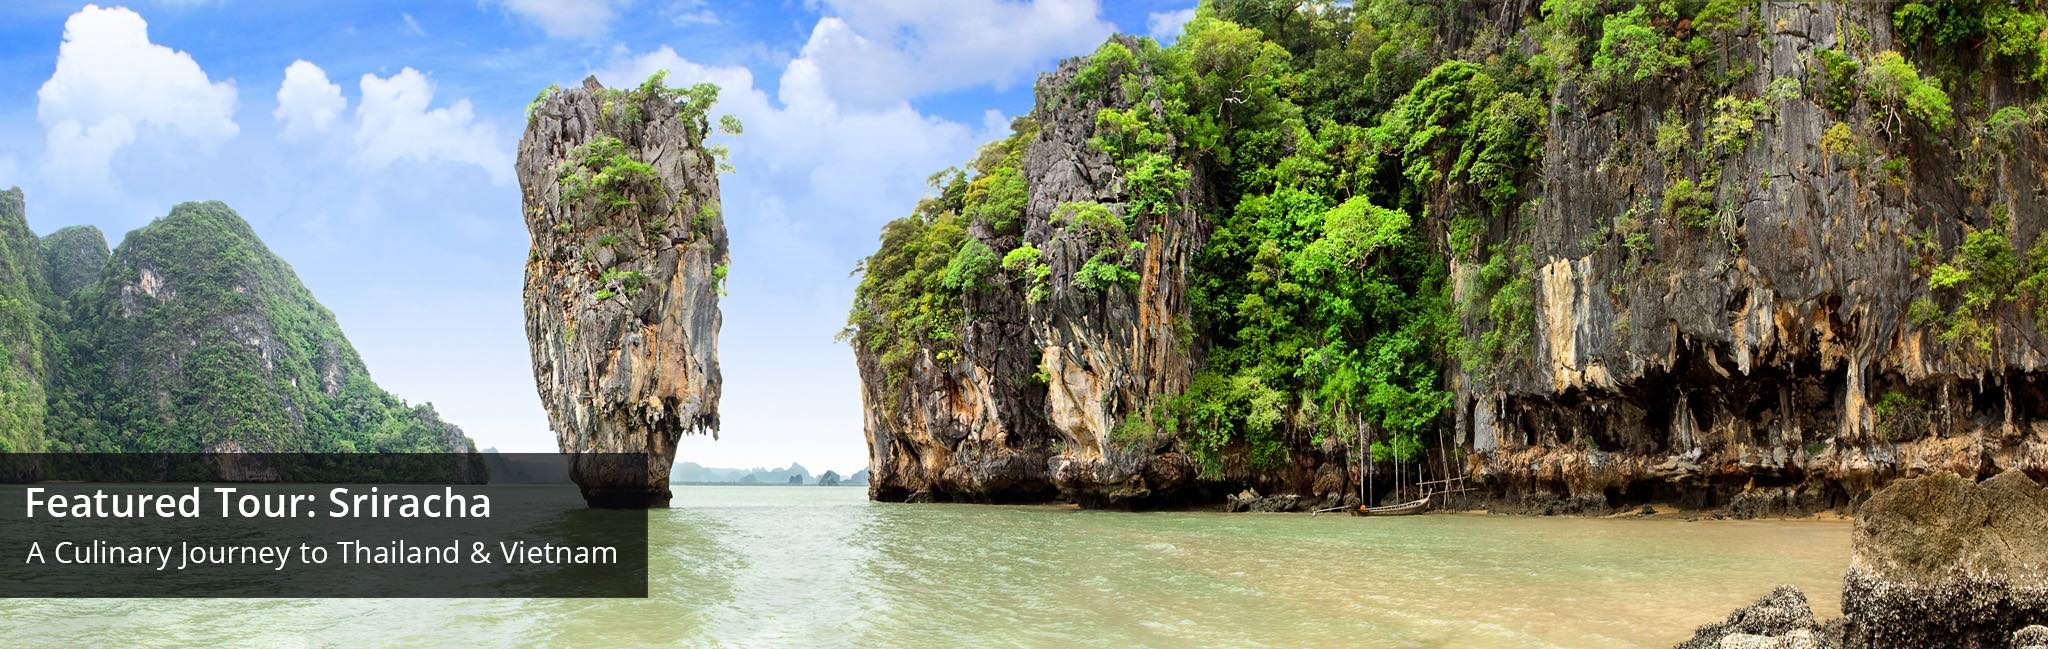 Thailand tour of James Bond Island